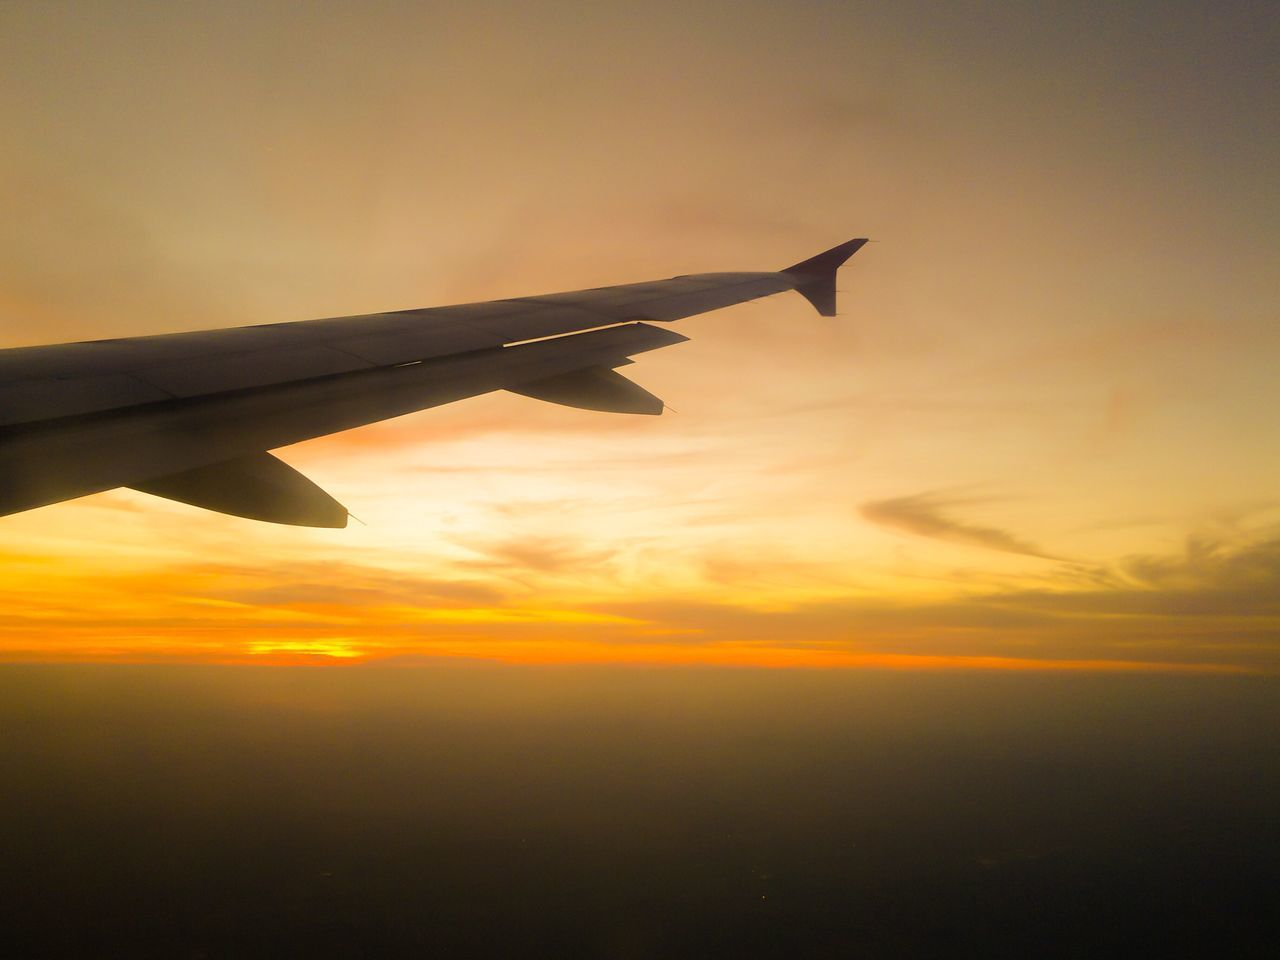 Airplane Sunset Transportation Sky Journey Flying Nature Travel Aircraft Wing Beauty In Nature No People Airplane Wing Plane Cloud - Sky Cloudscape Dramatic Sky Air Vehicle Outdoors Day